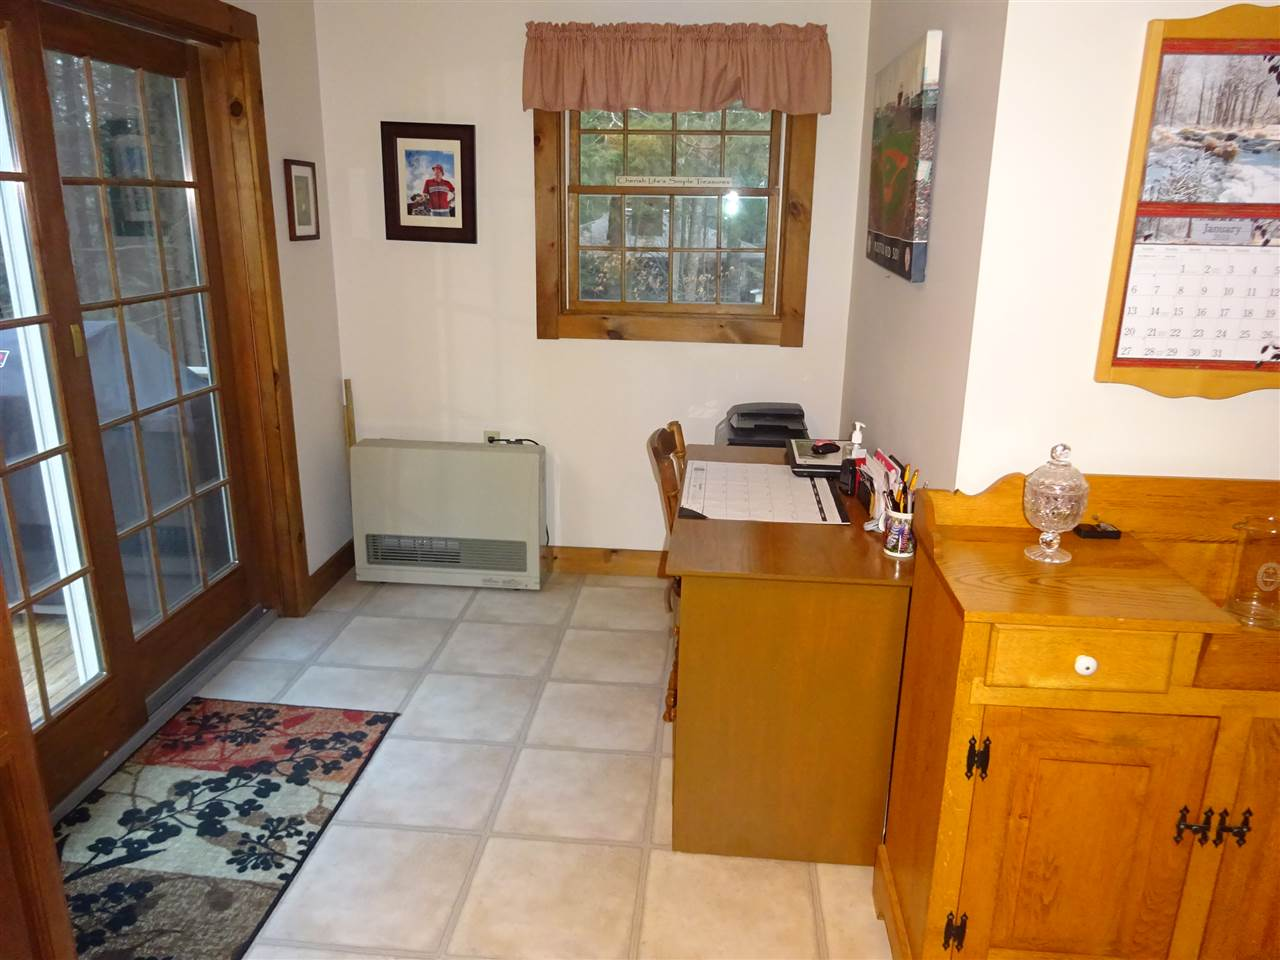 Office space off kitchen 13035465